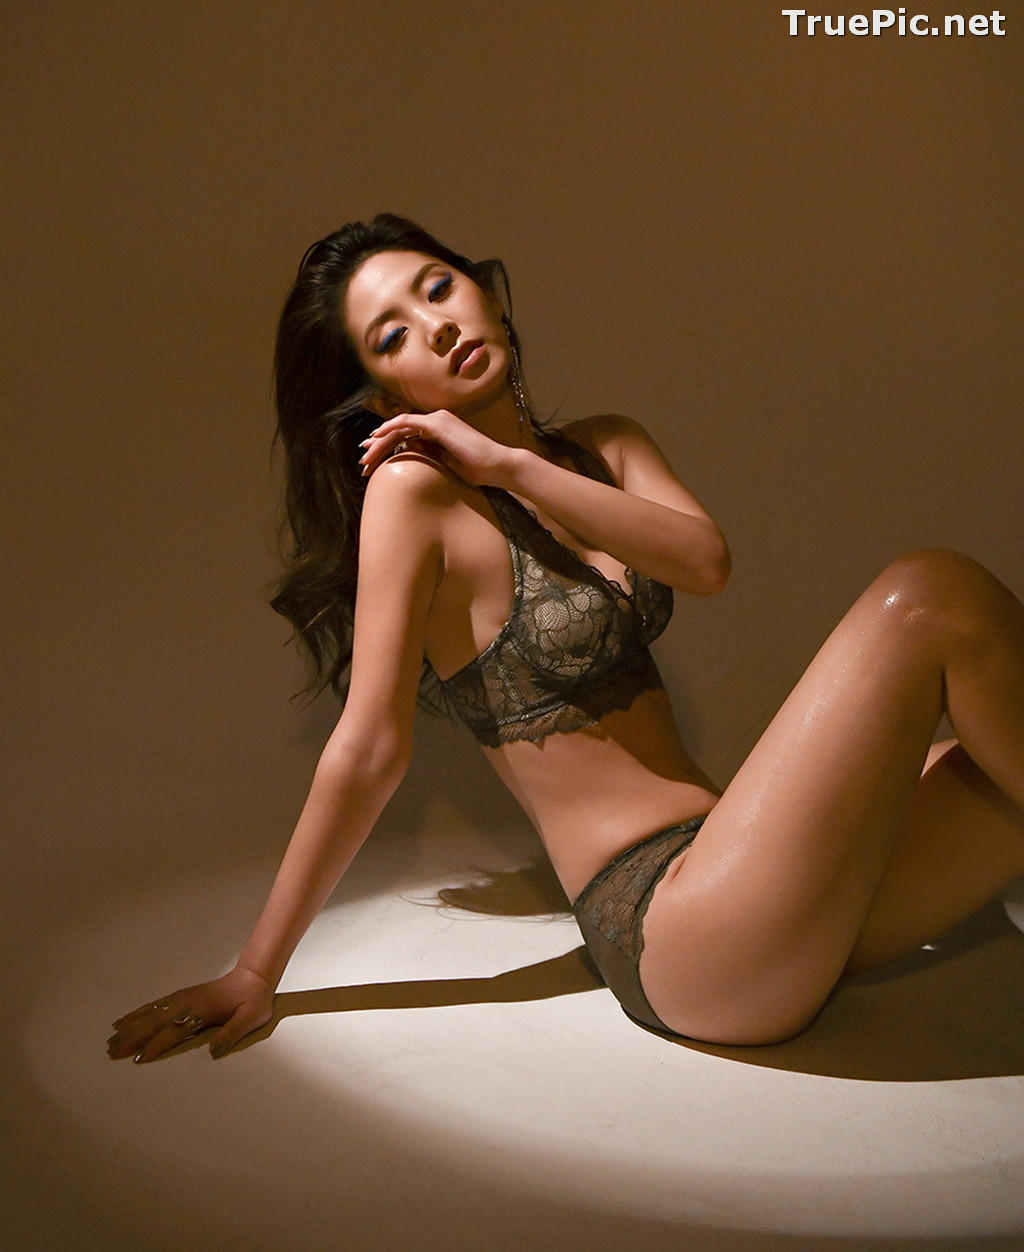 Image Korean Fashion Model - Lee Chae Eun - Soft Brown Lingerie - TruePic.net - Picture-7